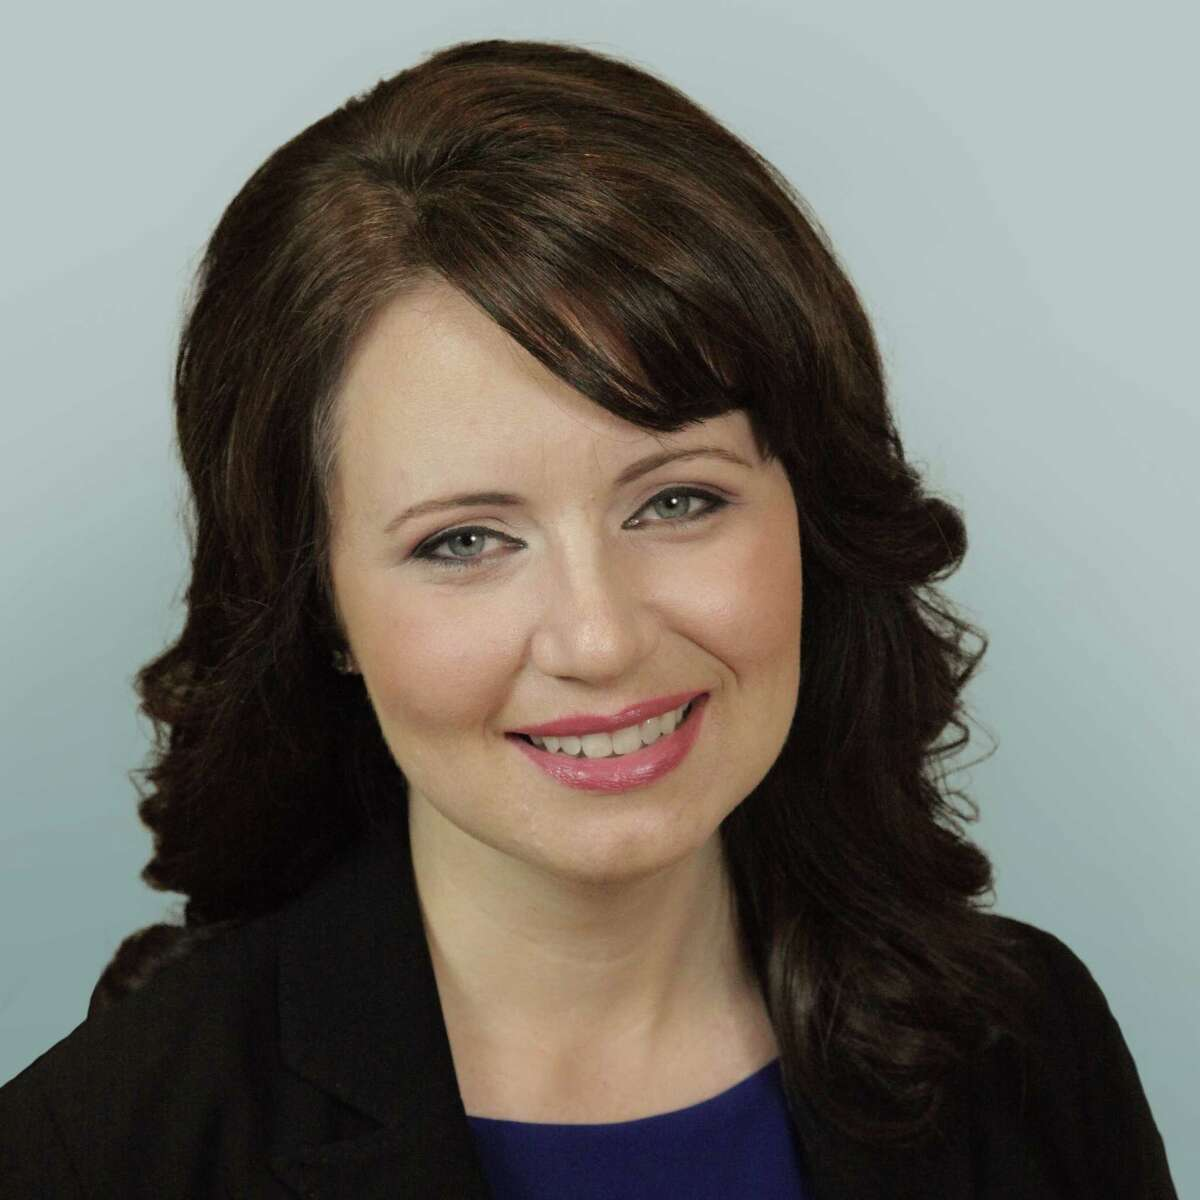 Alison Comstock Moss has been named board chair of River Oaks Chamber Orchestra. Moss is chief strategy officer at Paul Comstock Partners and a principal of the firm.